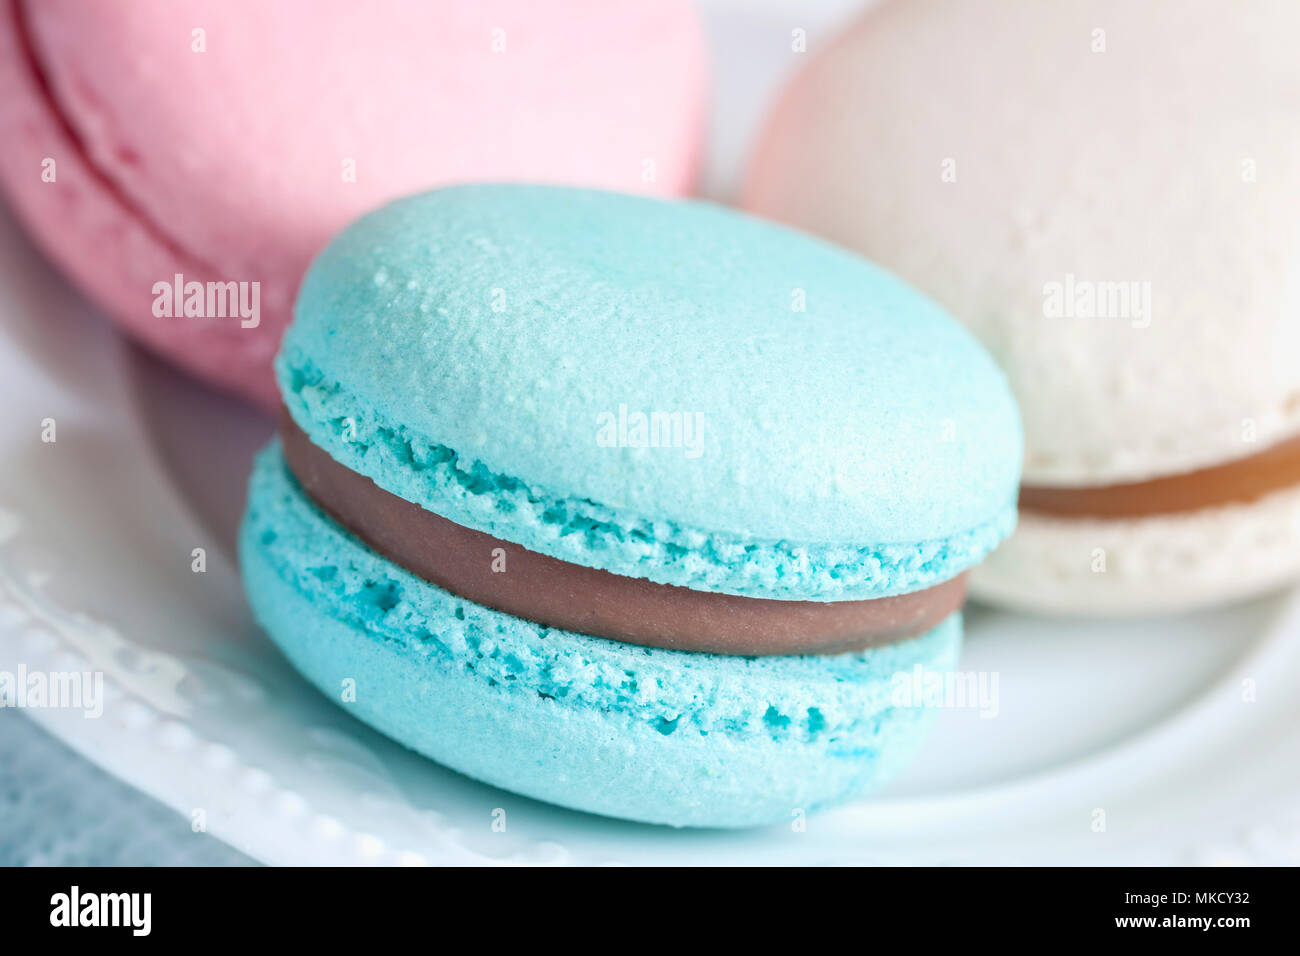 Three macaroons of different colors and different tastes in a white plate close-up - Stock Image